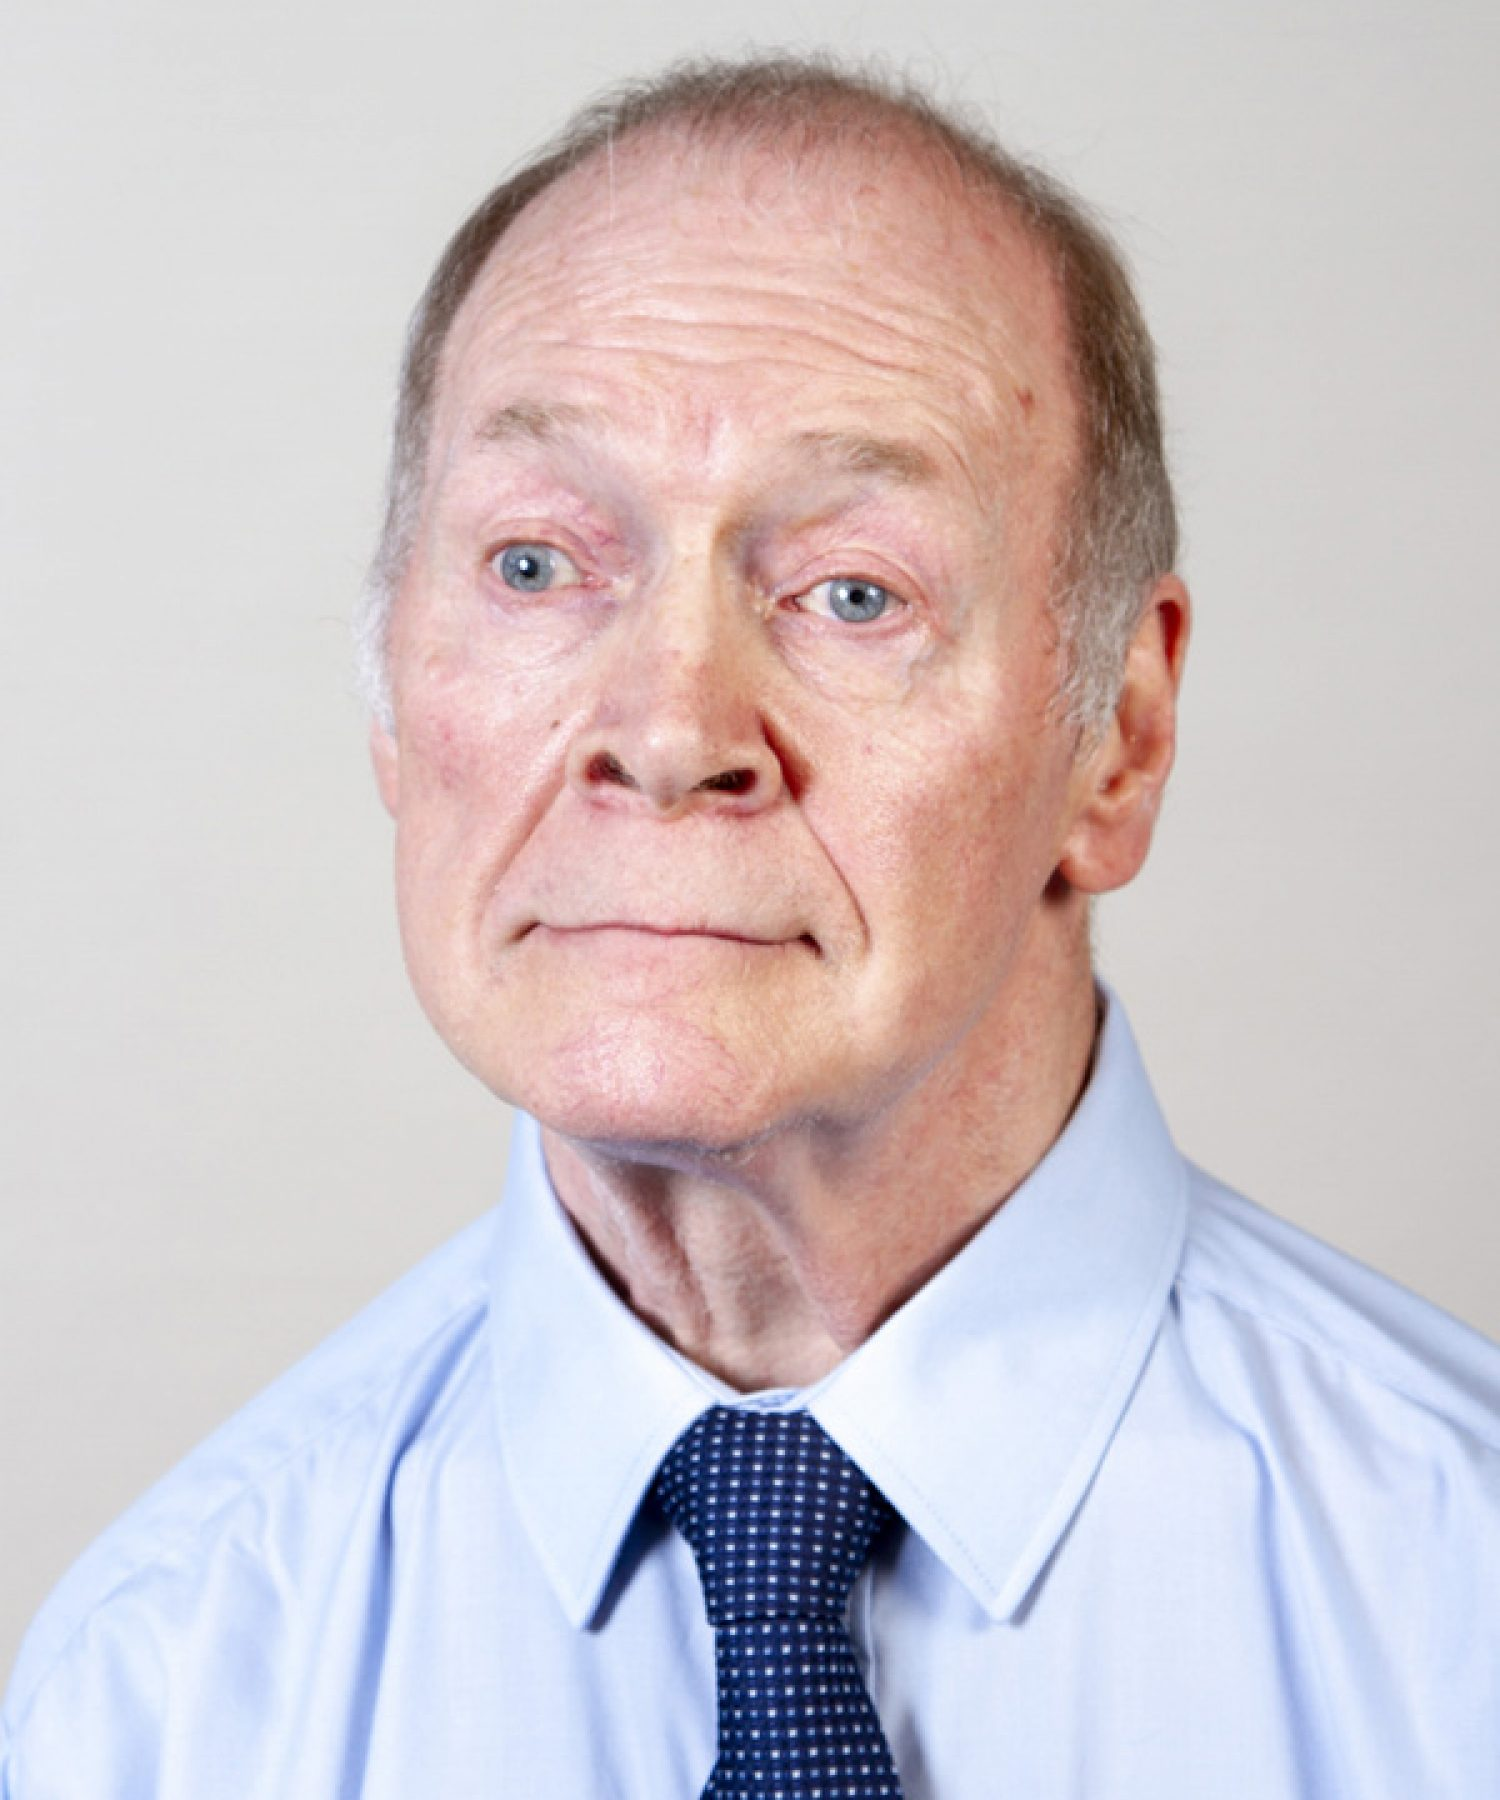 Image of Cllr David Trigger taken 2019